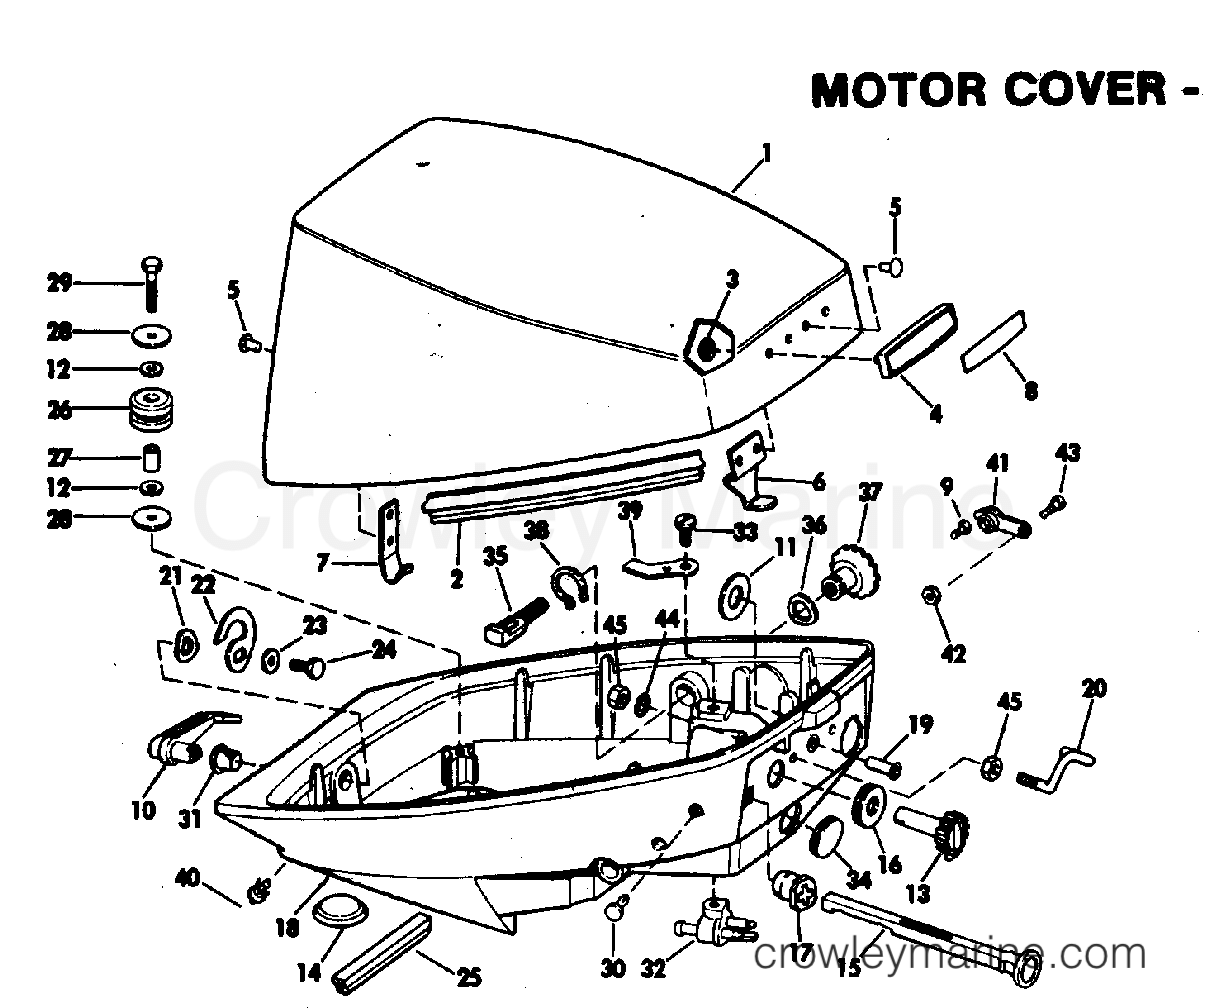 Motor Cover Johnson